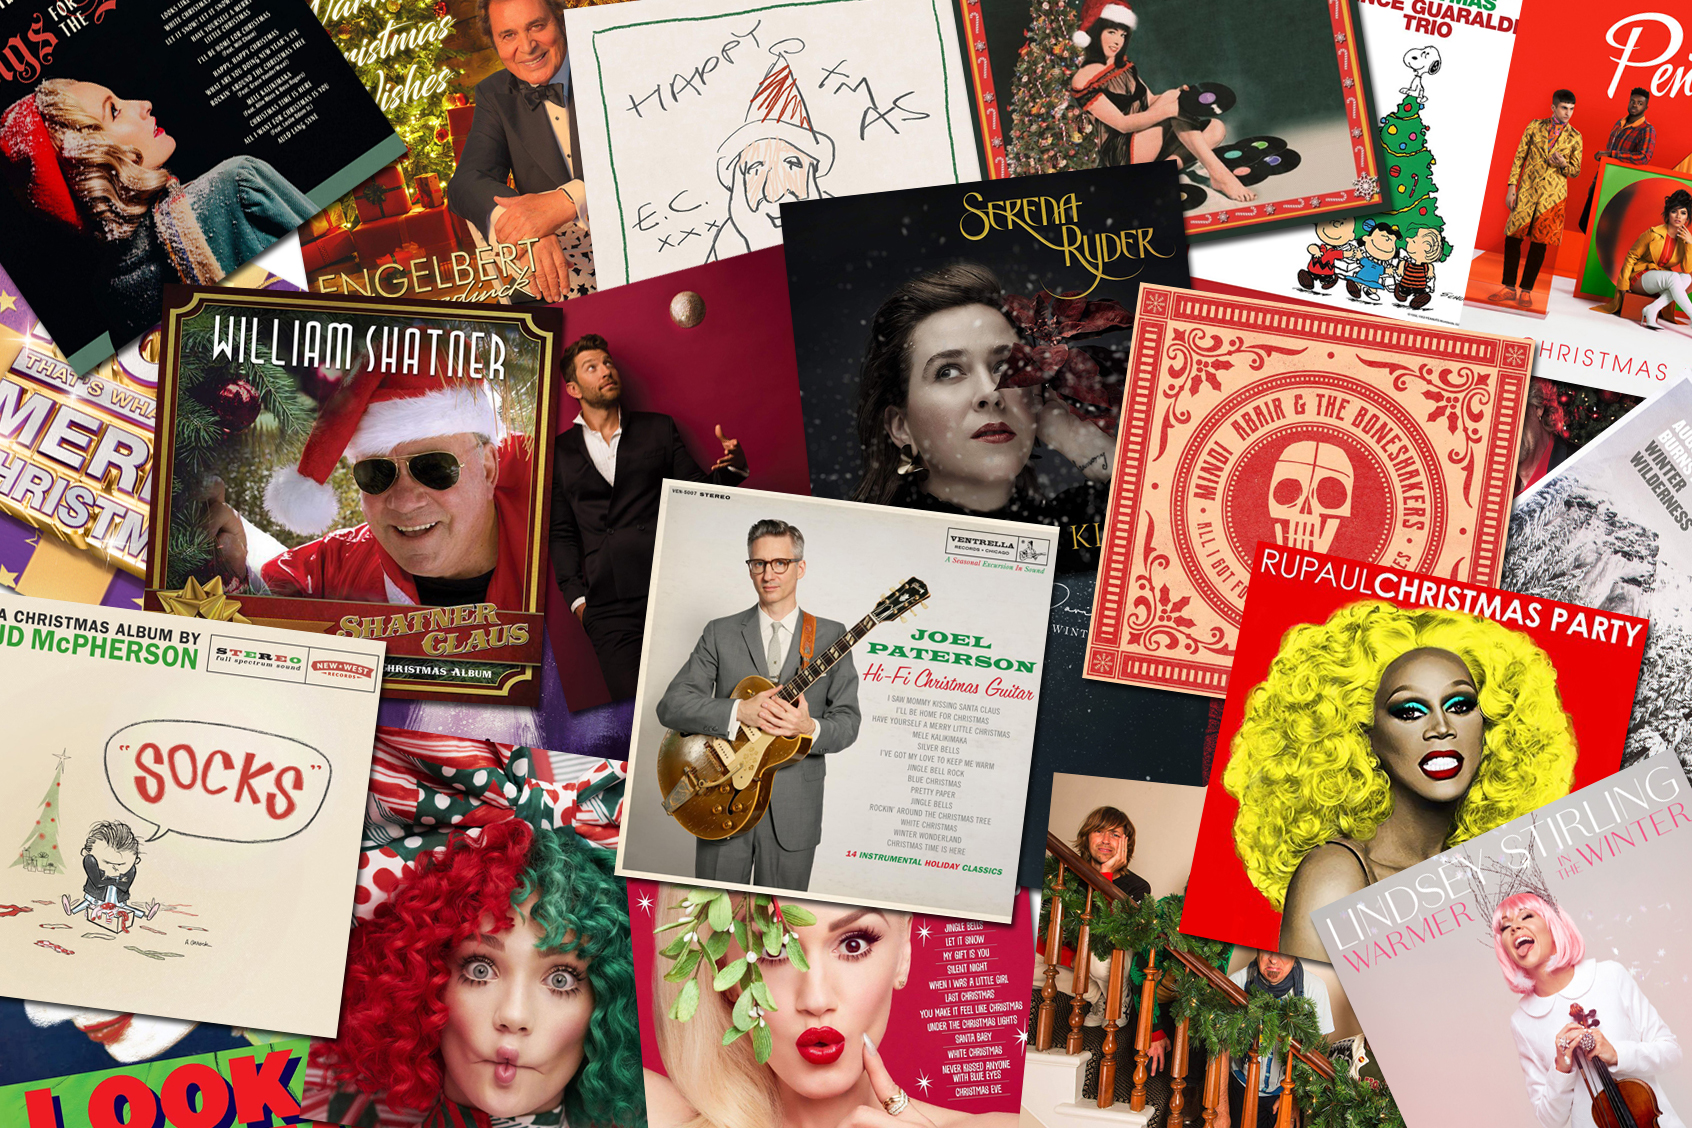 ae3af01799 Update  Since publishing our list of 40 new Christmas albums the holiday  music machine churned out a few more 2018 notables for a new total of 50  albums.